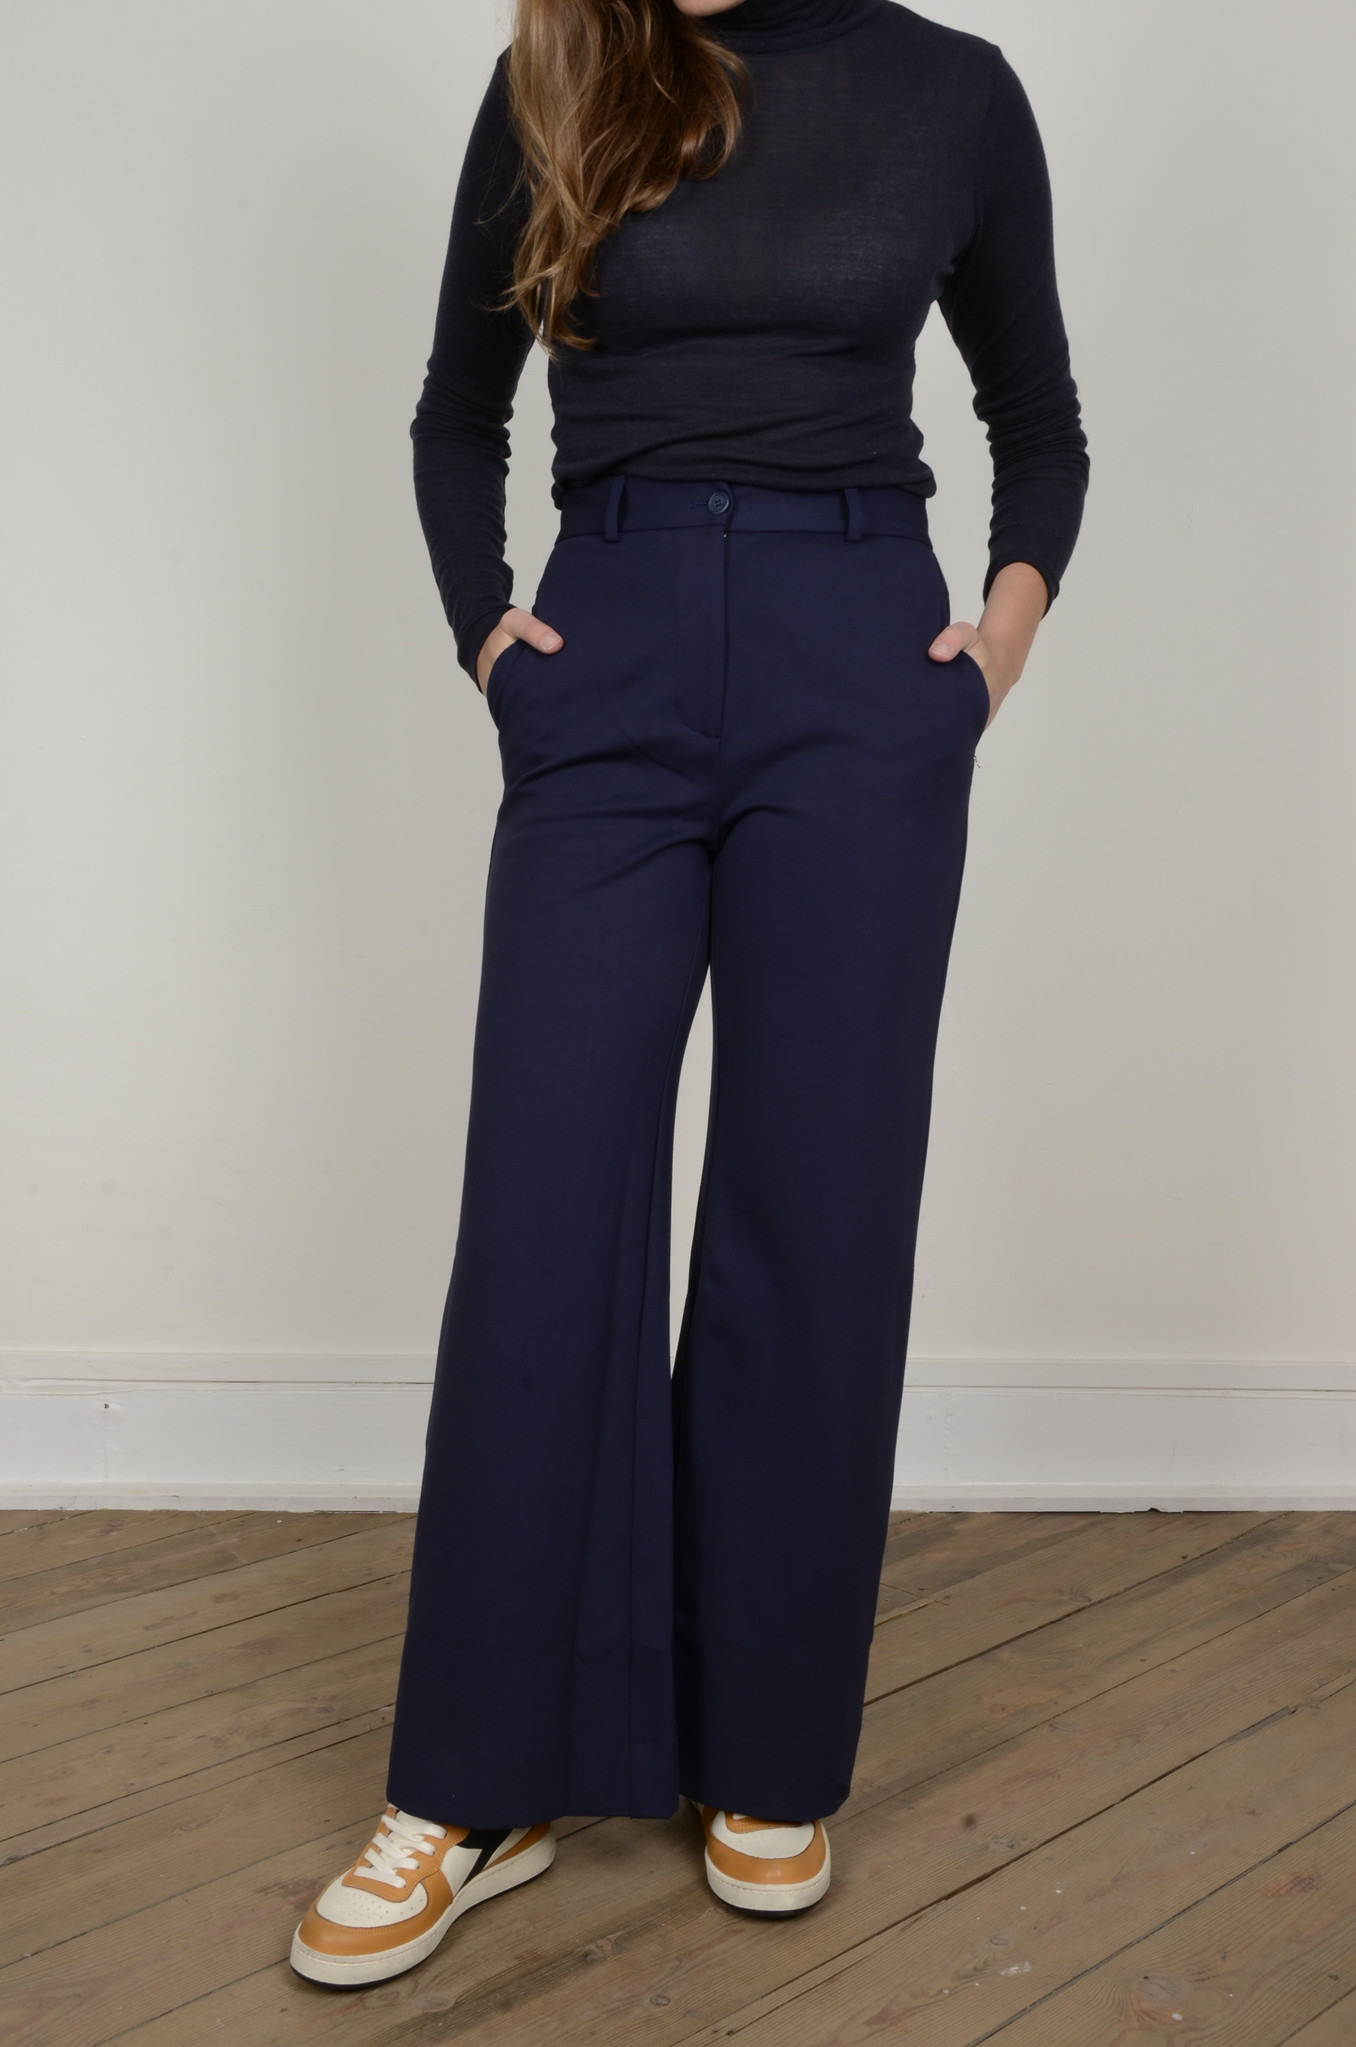 NAVY FLARED TROUSERS-1